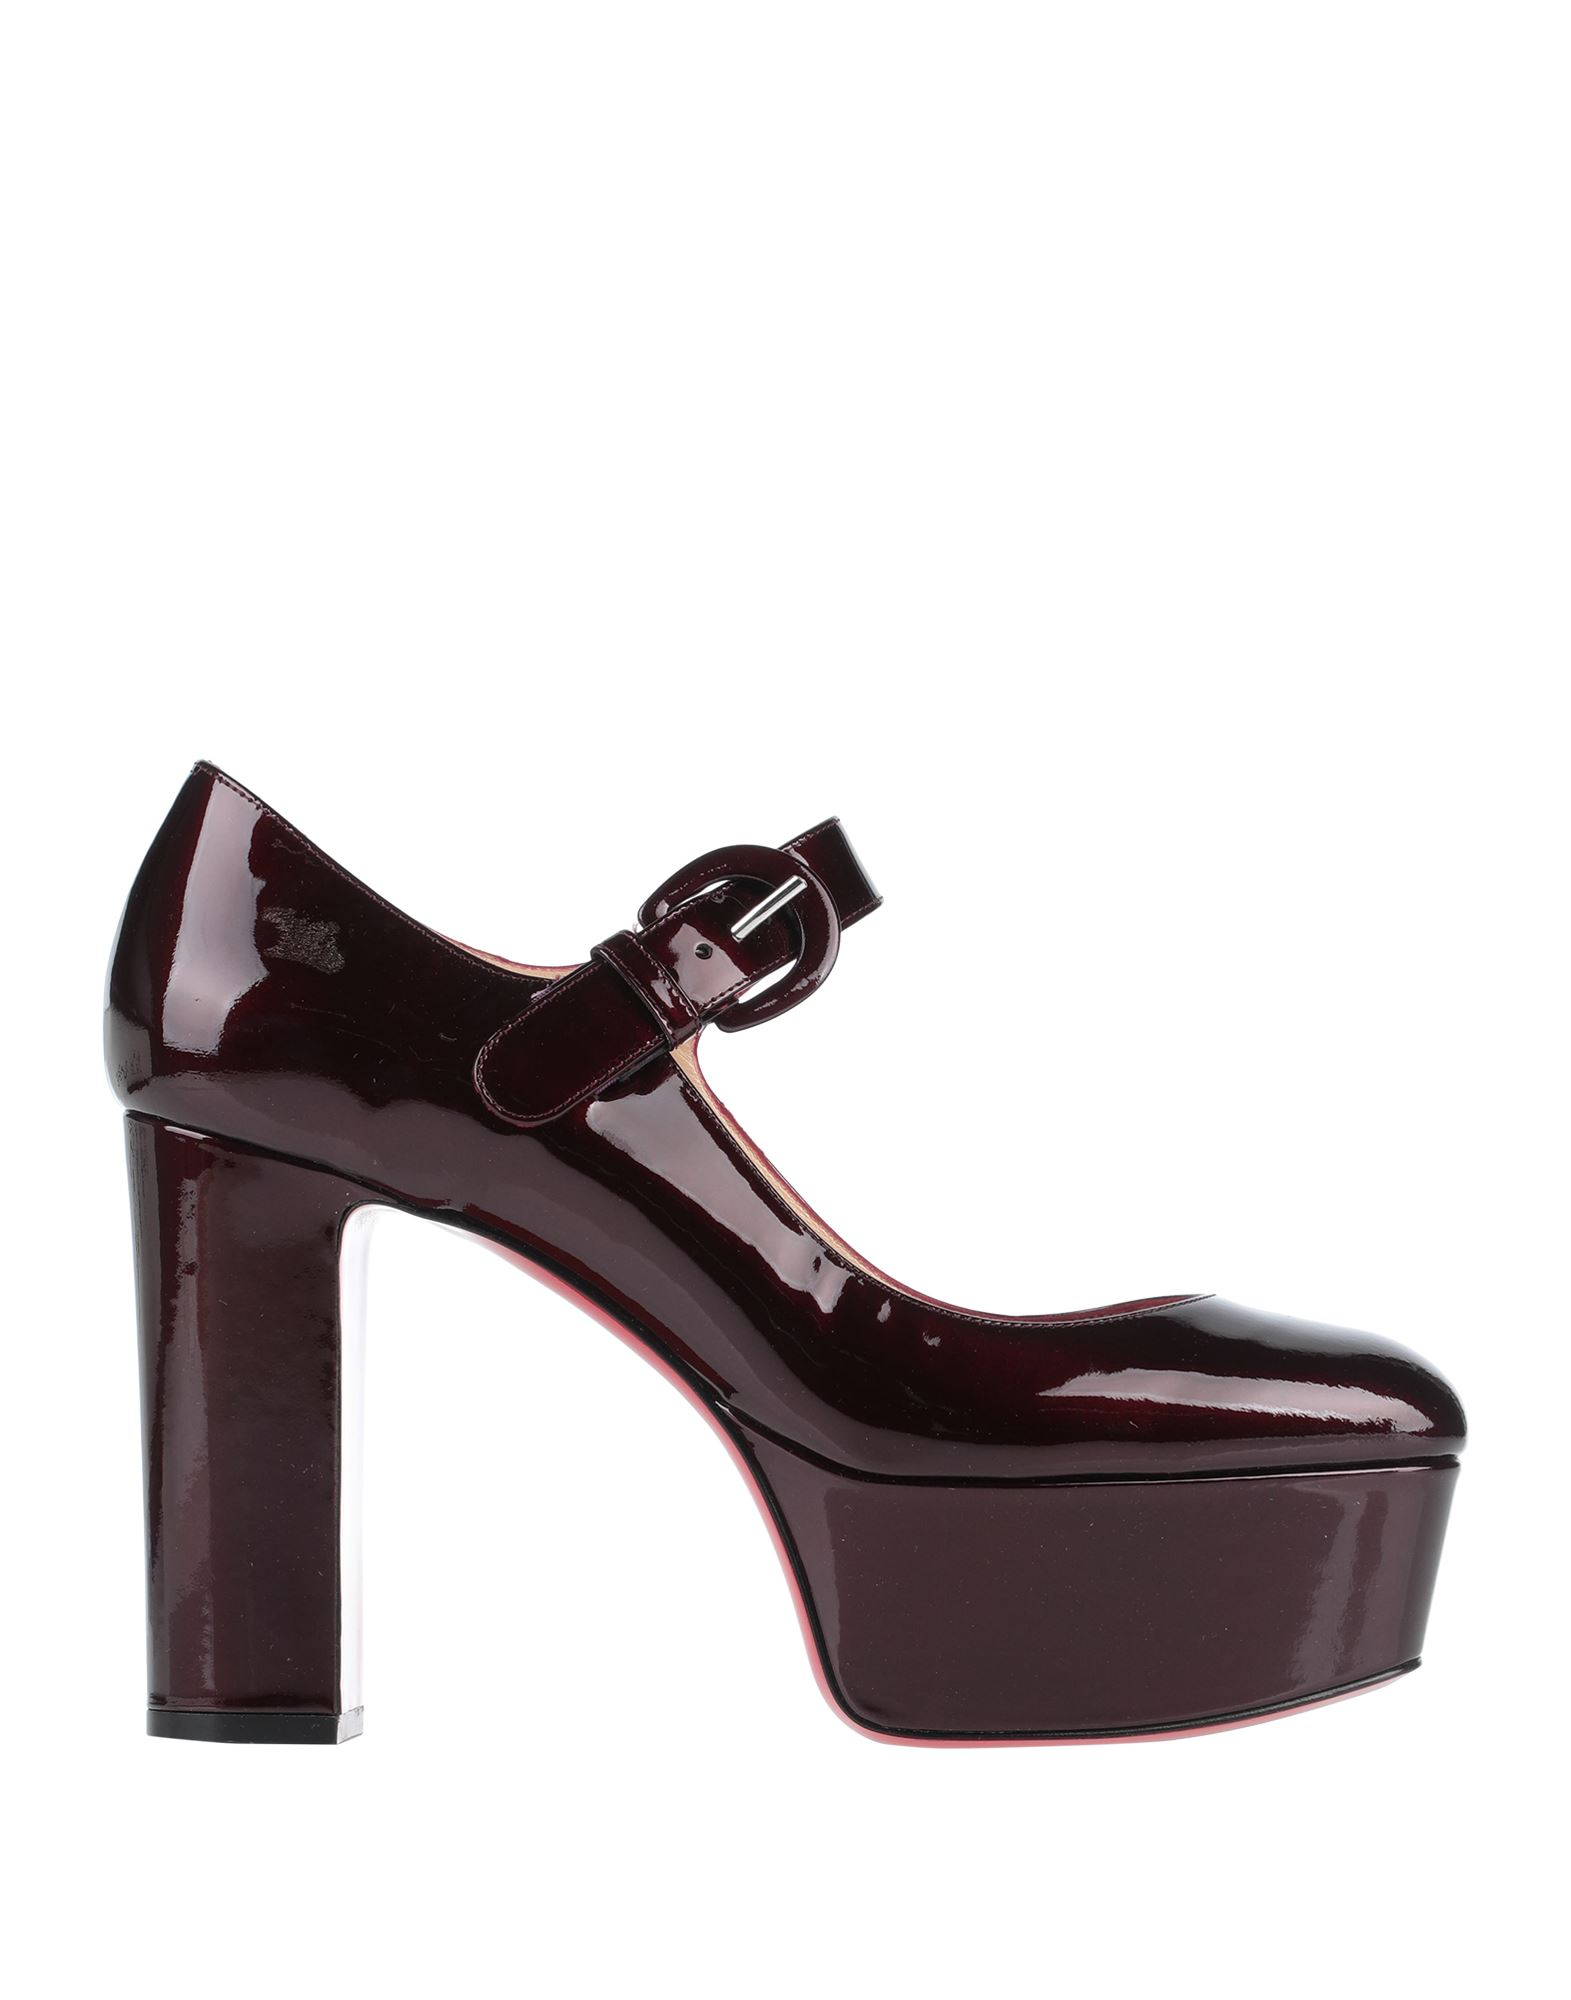 CHRISTIAN LOUBOUTIN Pumps. leather, varnished effect, no appliqués, solid color, round toeline, square heel, covered heel, leather lining, leather sole, contains non-textile parts of animal origin, small sized. Soft Leather